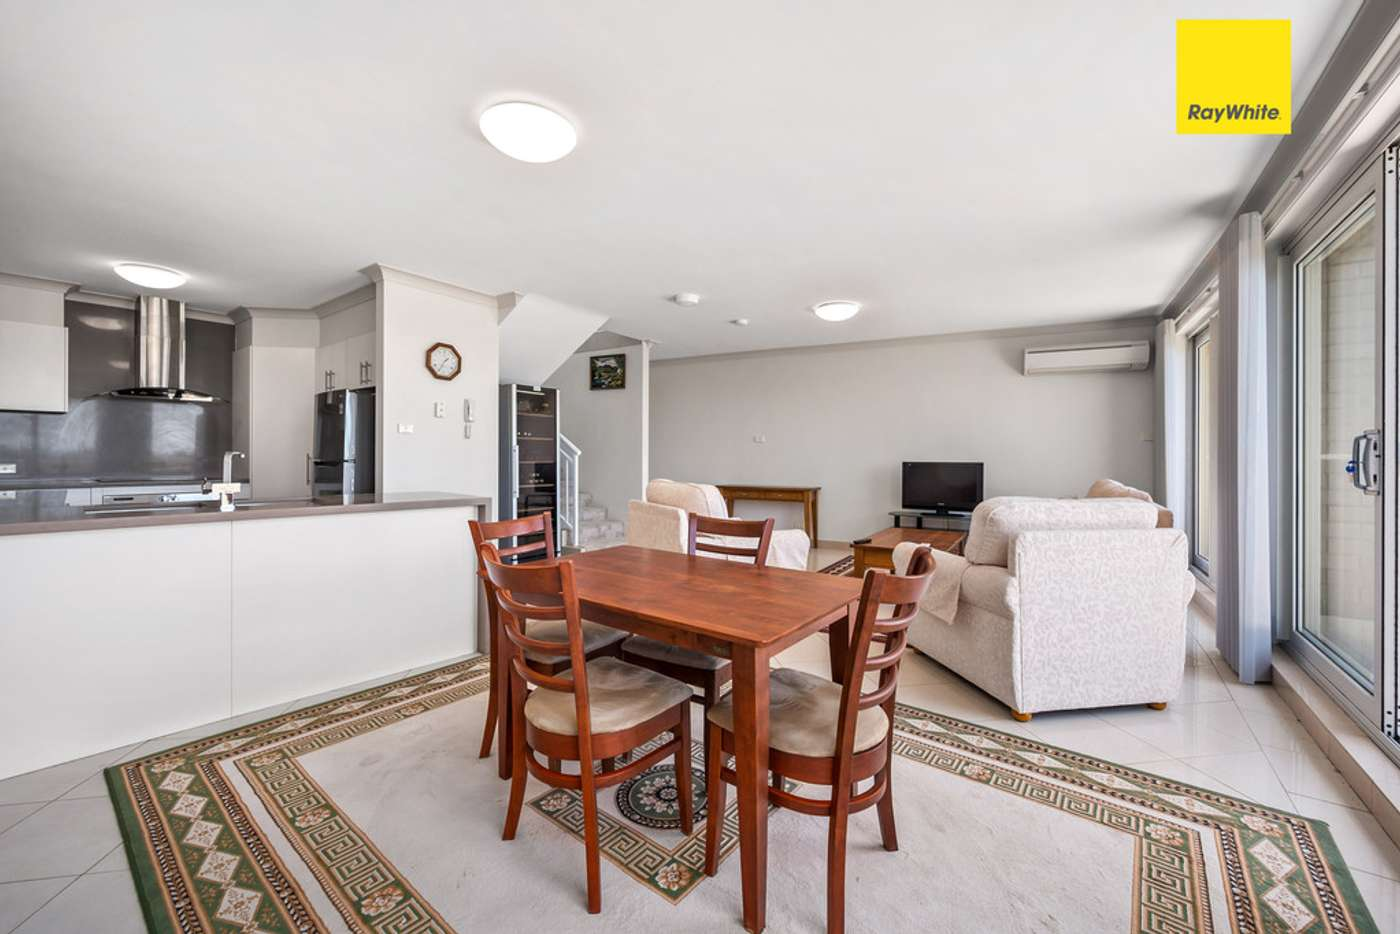 Sixth view of Homely apartment listing, 24/2 Belmont Street, Swansea NSW 2281